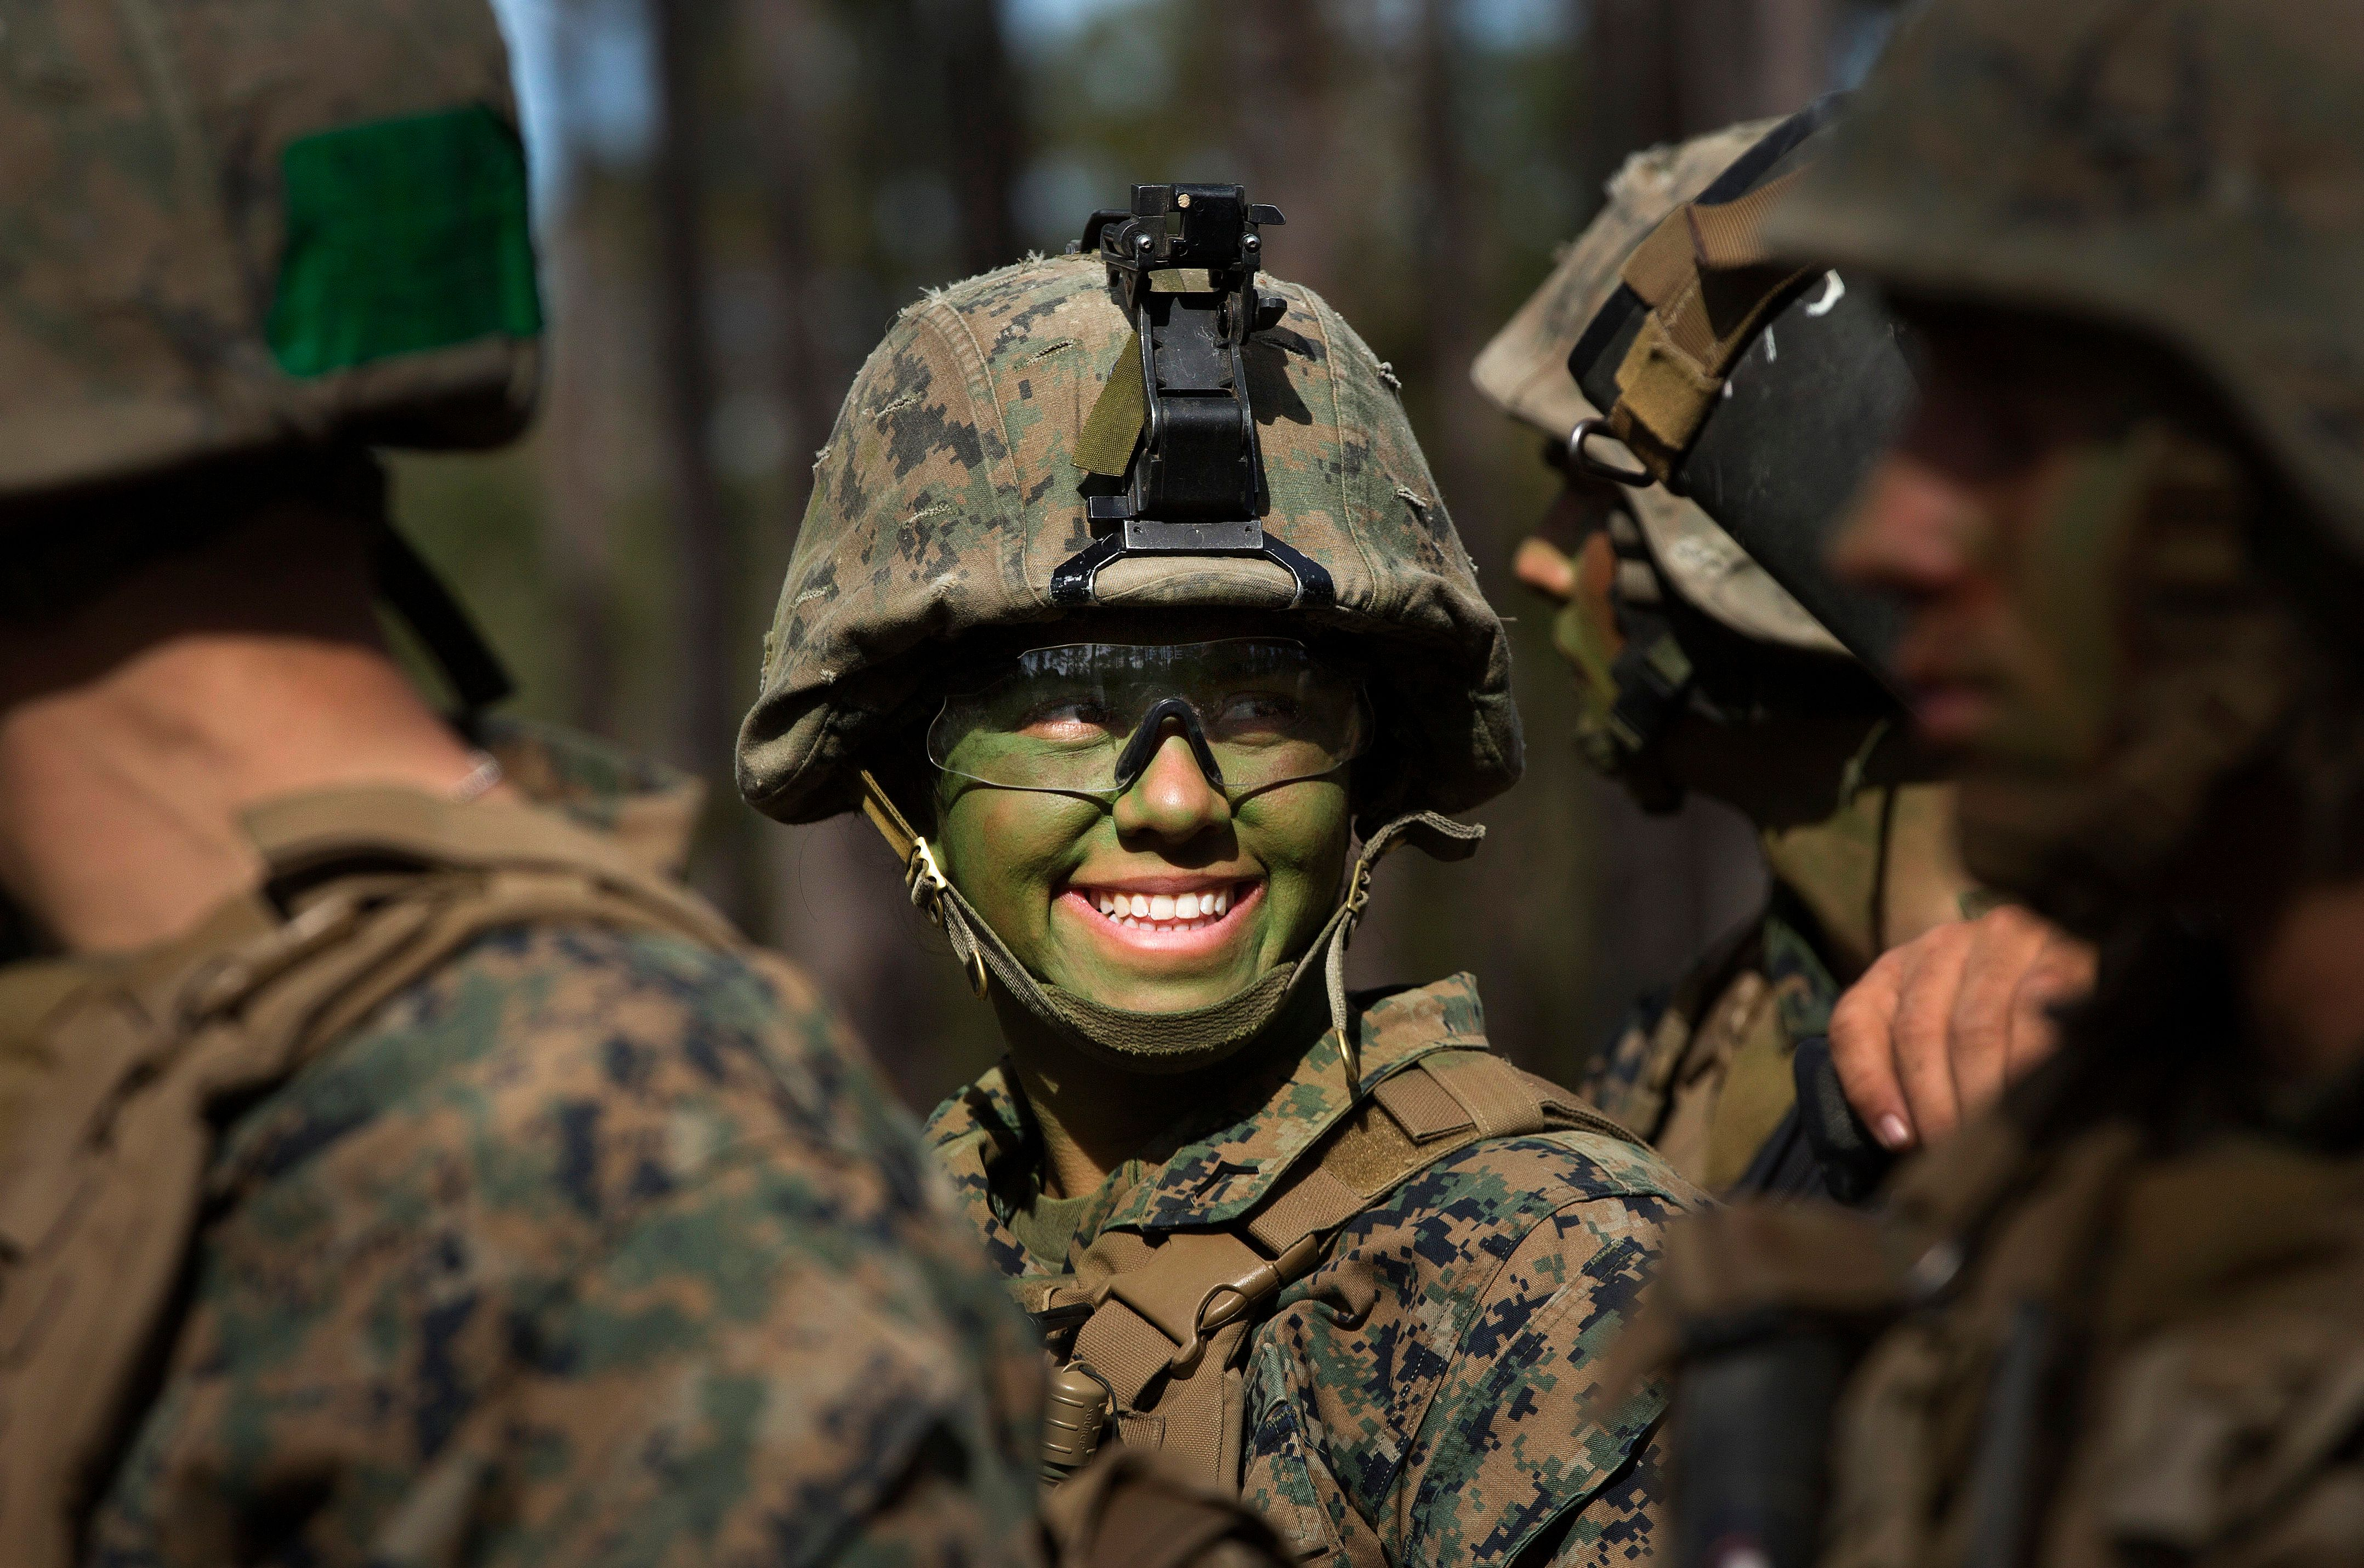 Pfc. Christina Fuentes Montenegro and other Marines from Delta Company, Infantry Training Battalion , School of Infantry-East, receive final instructions prior to assaulting an objective during the Infantry Integrated Field Training Exercise aboard Camp Geiger, N.C., Nov 15, 2013. Montenegro is one of three female Marines to be the first women to graduate infantry training with the battalion. Delta Company is the first company at ITB with female students as part of a measured, deliberate and responsible collection of data on the performance of female Marines when executing existing infantry tasks and training events, the Marine Corps is soliciting entry-level female Marine volunteers to attend the eight week basic infantryman and infantry rifleman training courses at ITB.